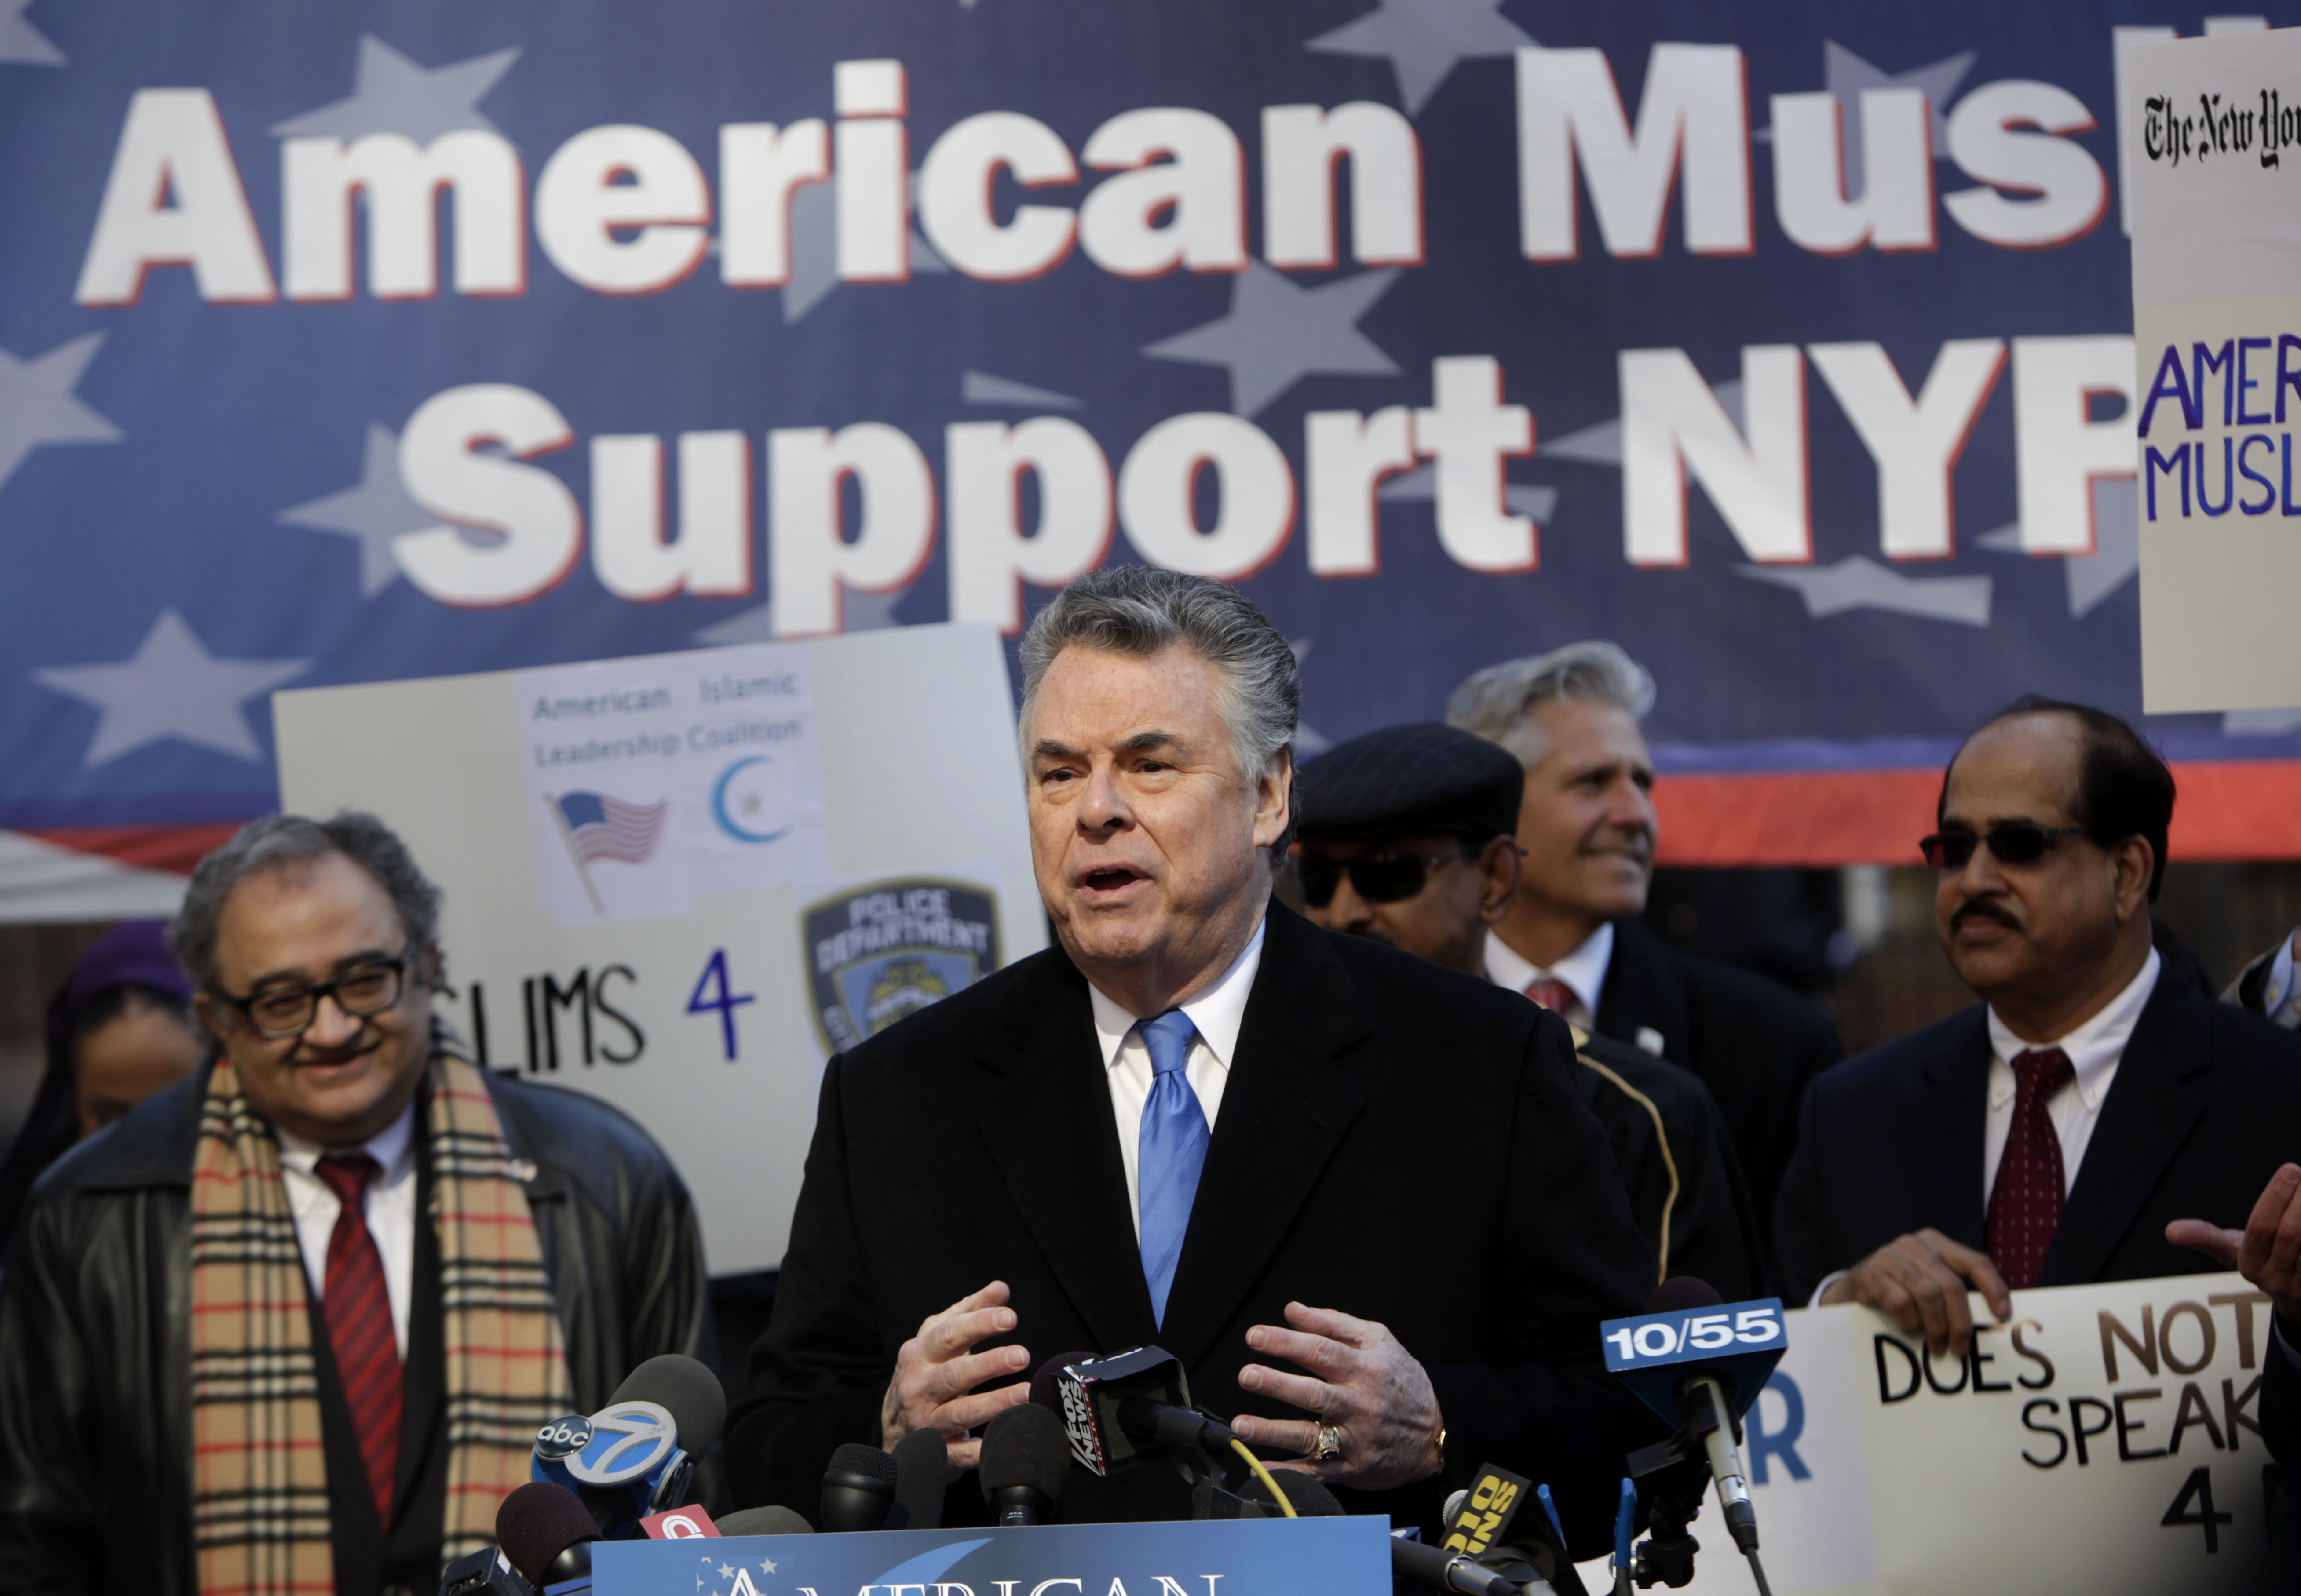 U.S. Rep. Peter King, R-N.Y., chairman of the House Committee on Homeland Security, speaks at a news conference in front of police headquarters in New York, Monday, March 5, 2012. King was present with dozens of activists to demonstrate support for the NYPD and their surveillance of Muslim communities. (AP Photo/Seth Wenig)